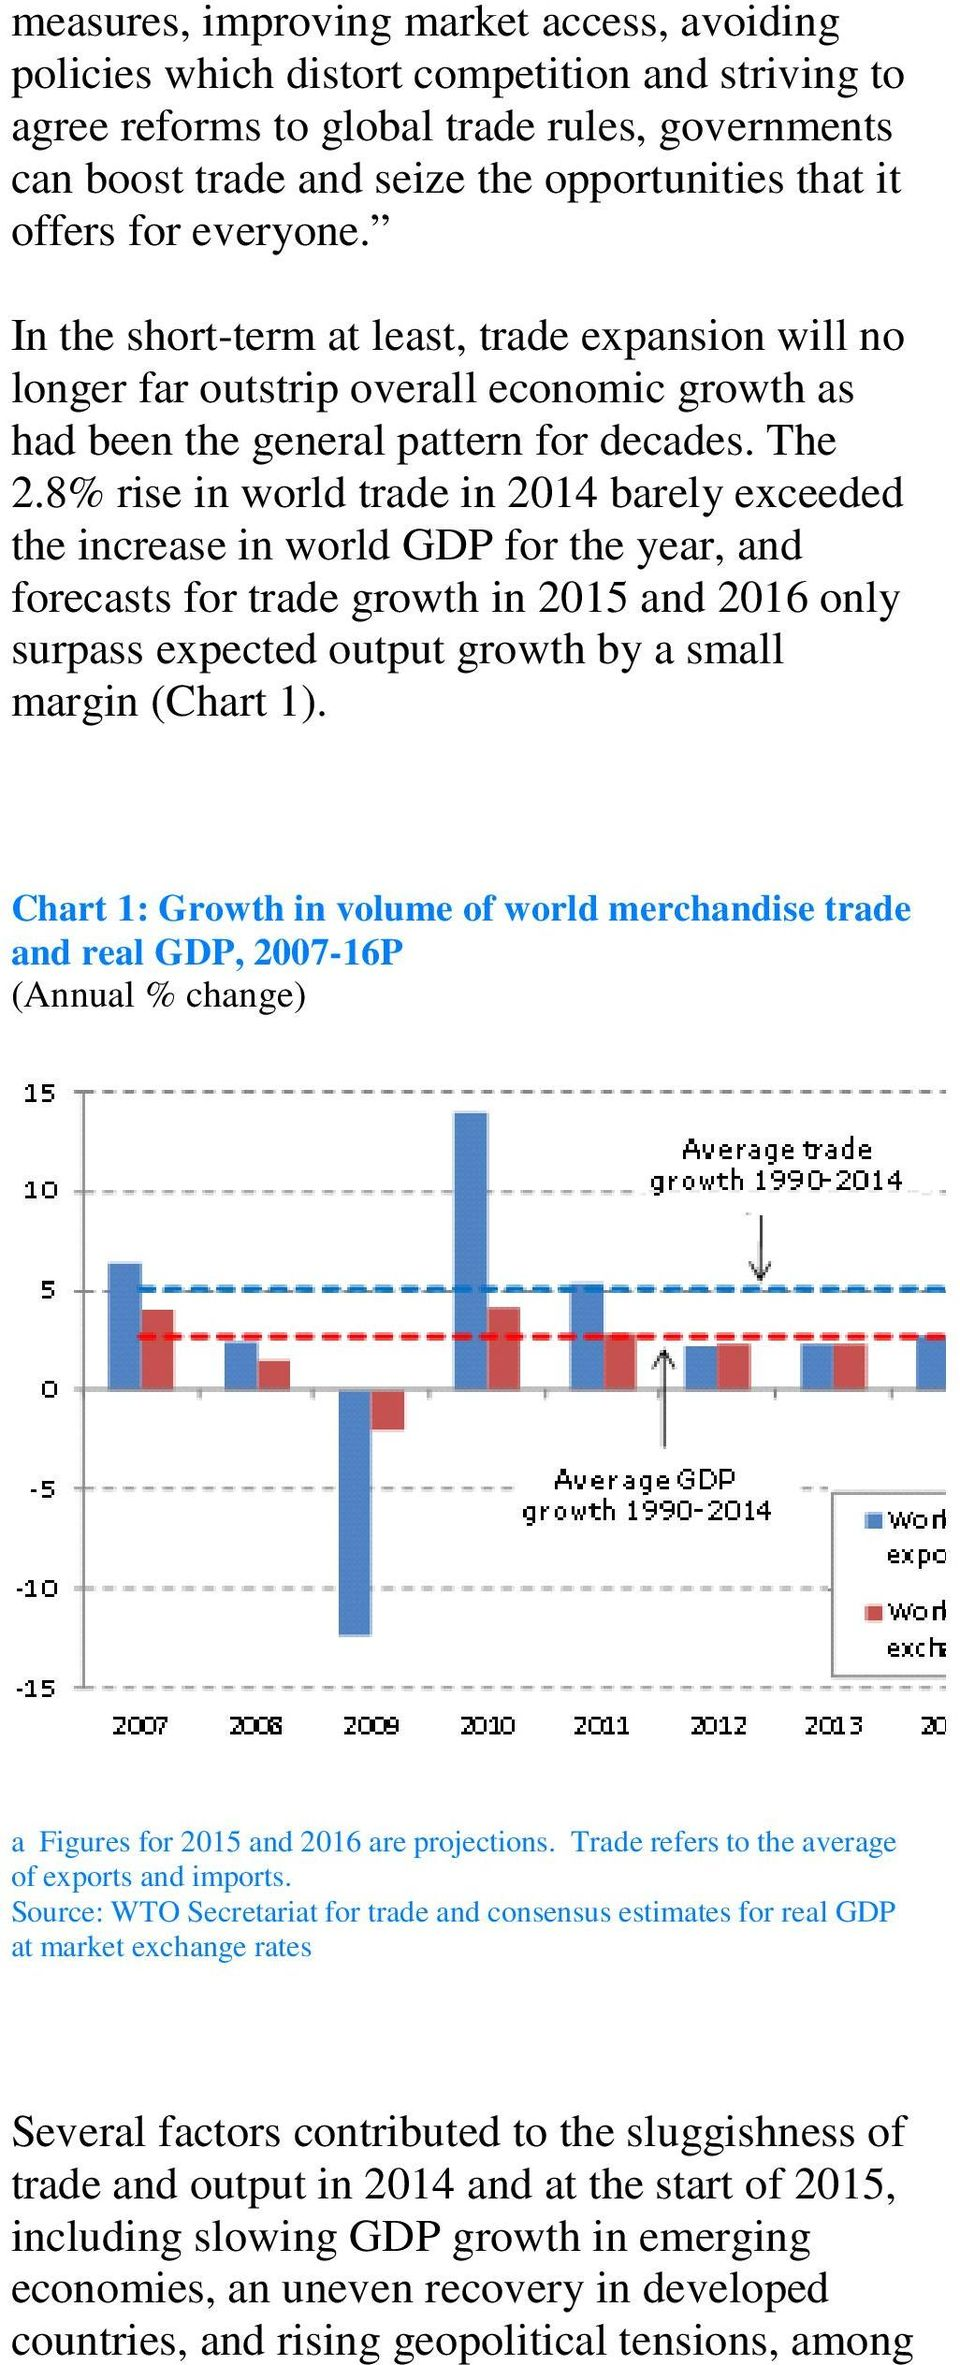 8% rise in world trade in 2014 barely exceeded the increase in world GDP for the year, and forecasts for trade growth in 2015 and 2016 only surpass expected output growth by a small margin (Chart 1).